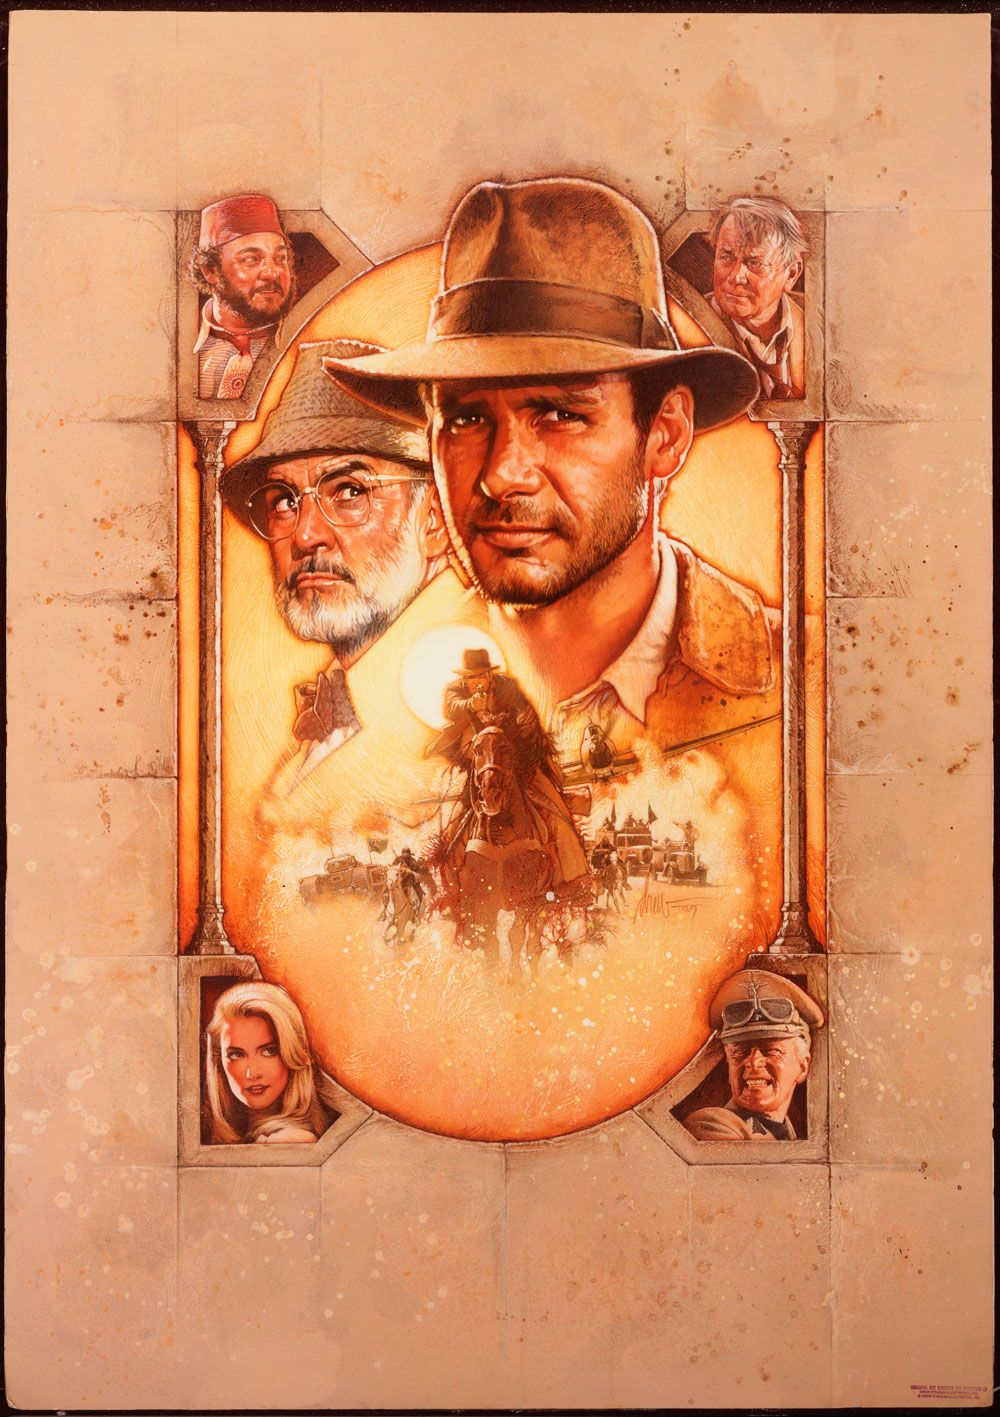 Indiana Jones and the Last Crusade Medium: Acrylic paints and colored pencils on gessoed board Size: 30x40 inches Year 1989 © Copyright Lucasfilm LTD. 1989